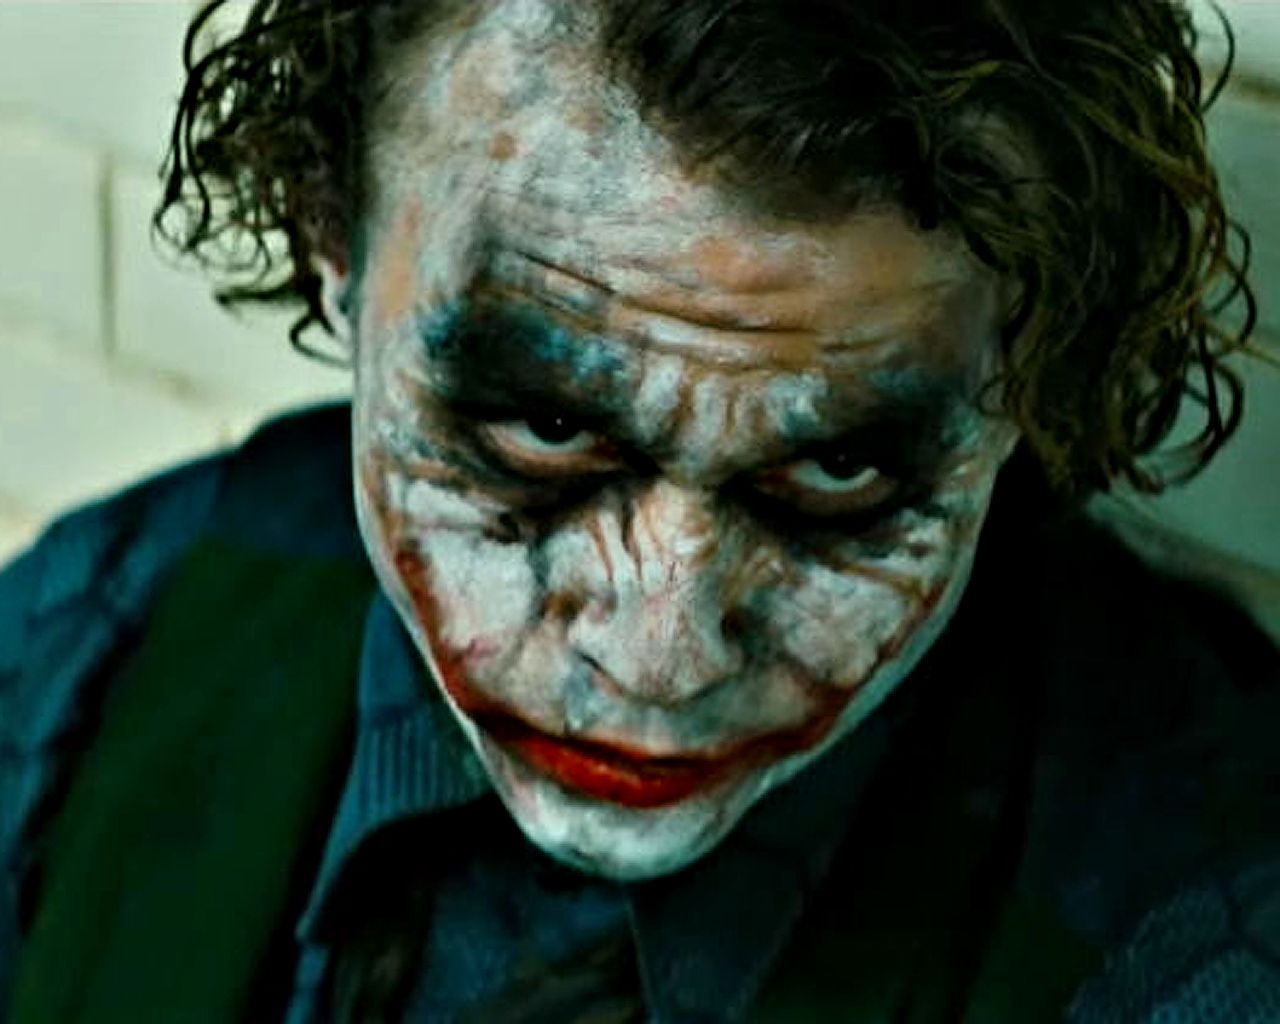 http://3.bp.blogspot.com/-AHowjSTIKt4/T-qqBUQHLqI/AAAAAAAACLg/X7bgGx23zaA/s1600/09+heath_ledger_as_joker_wallpaper_-_1280x1024.jpg